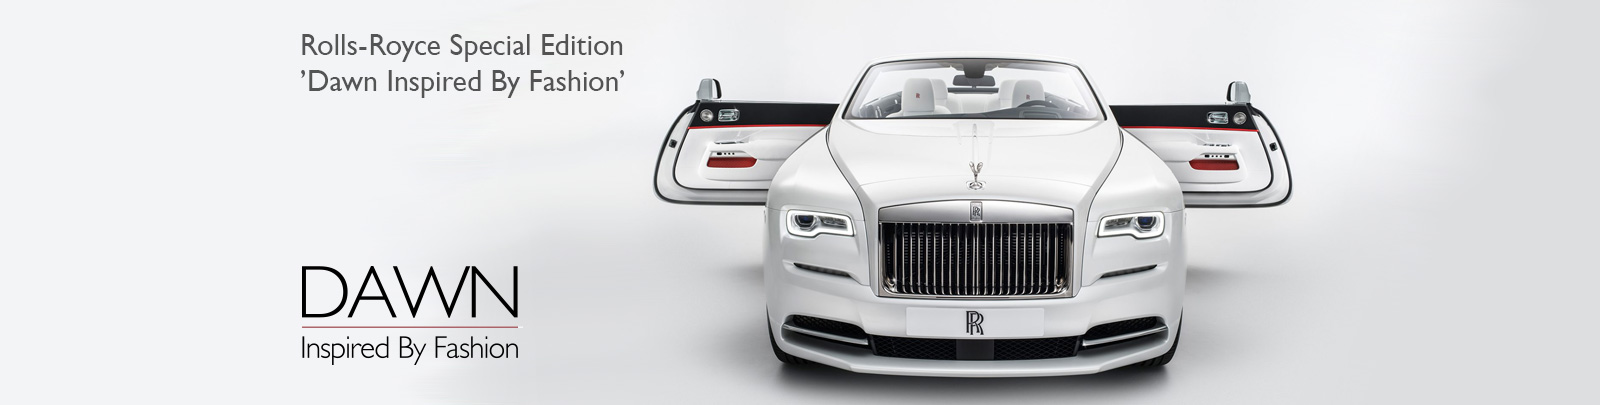 Rolls-Royce Special Edition 'Dawn Inspired by Fashion'